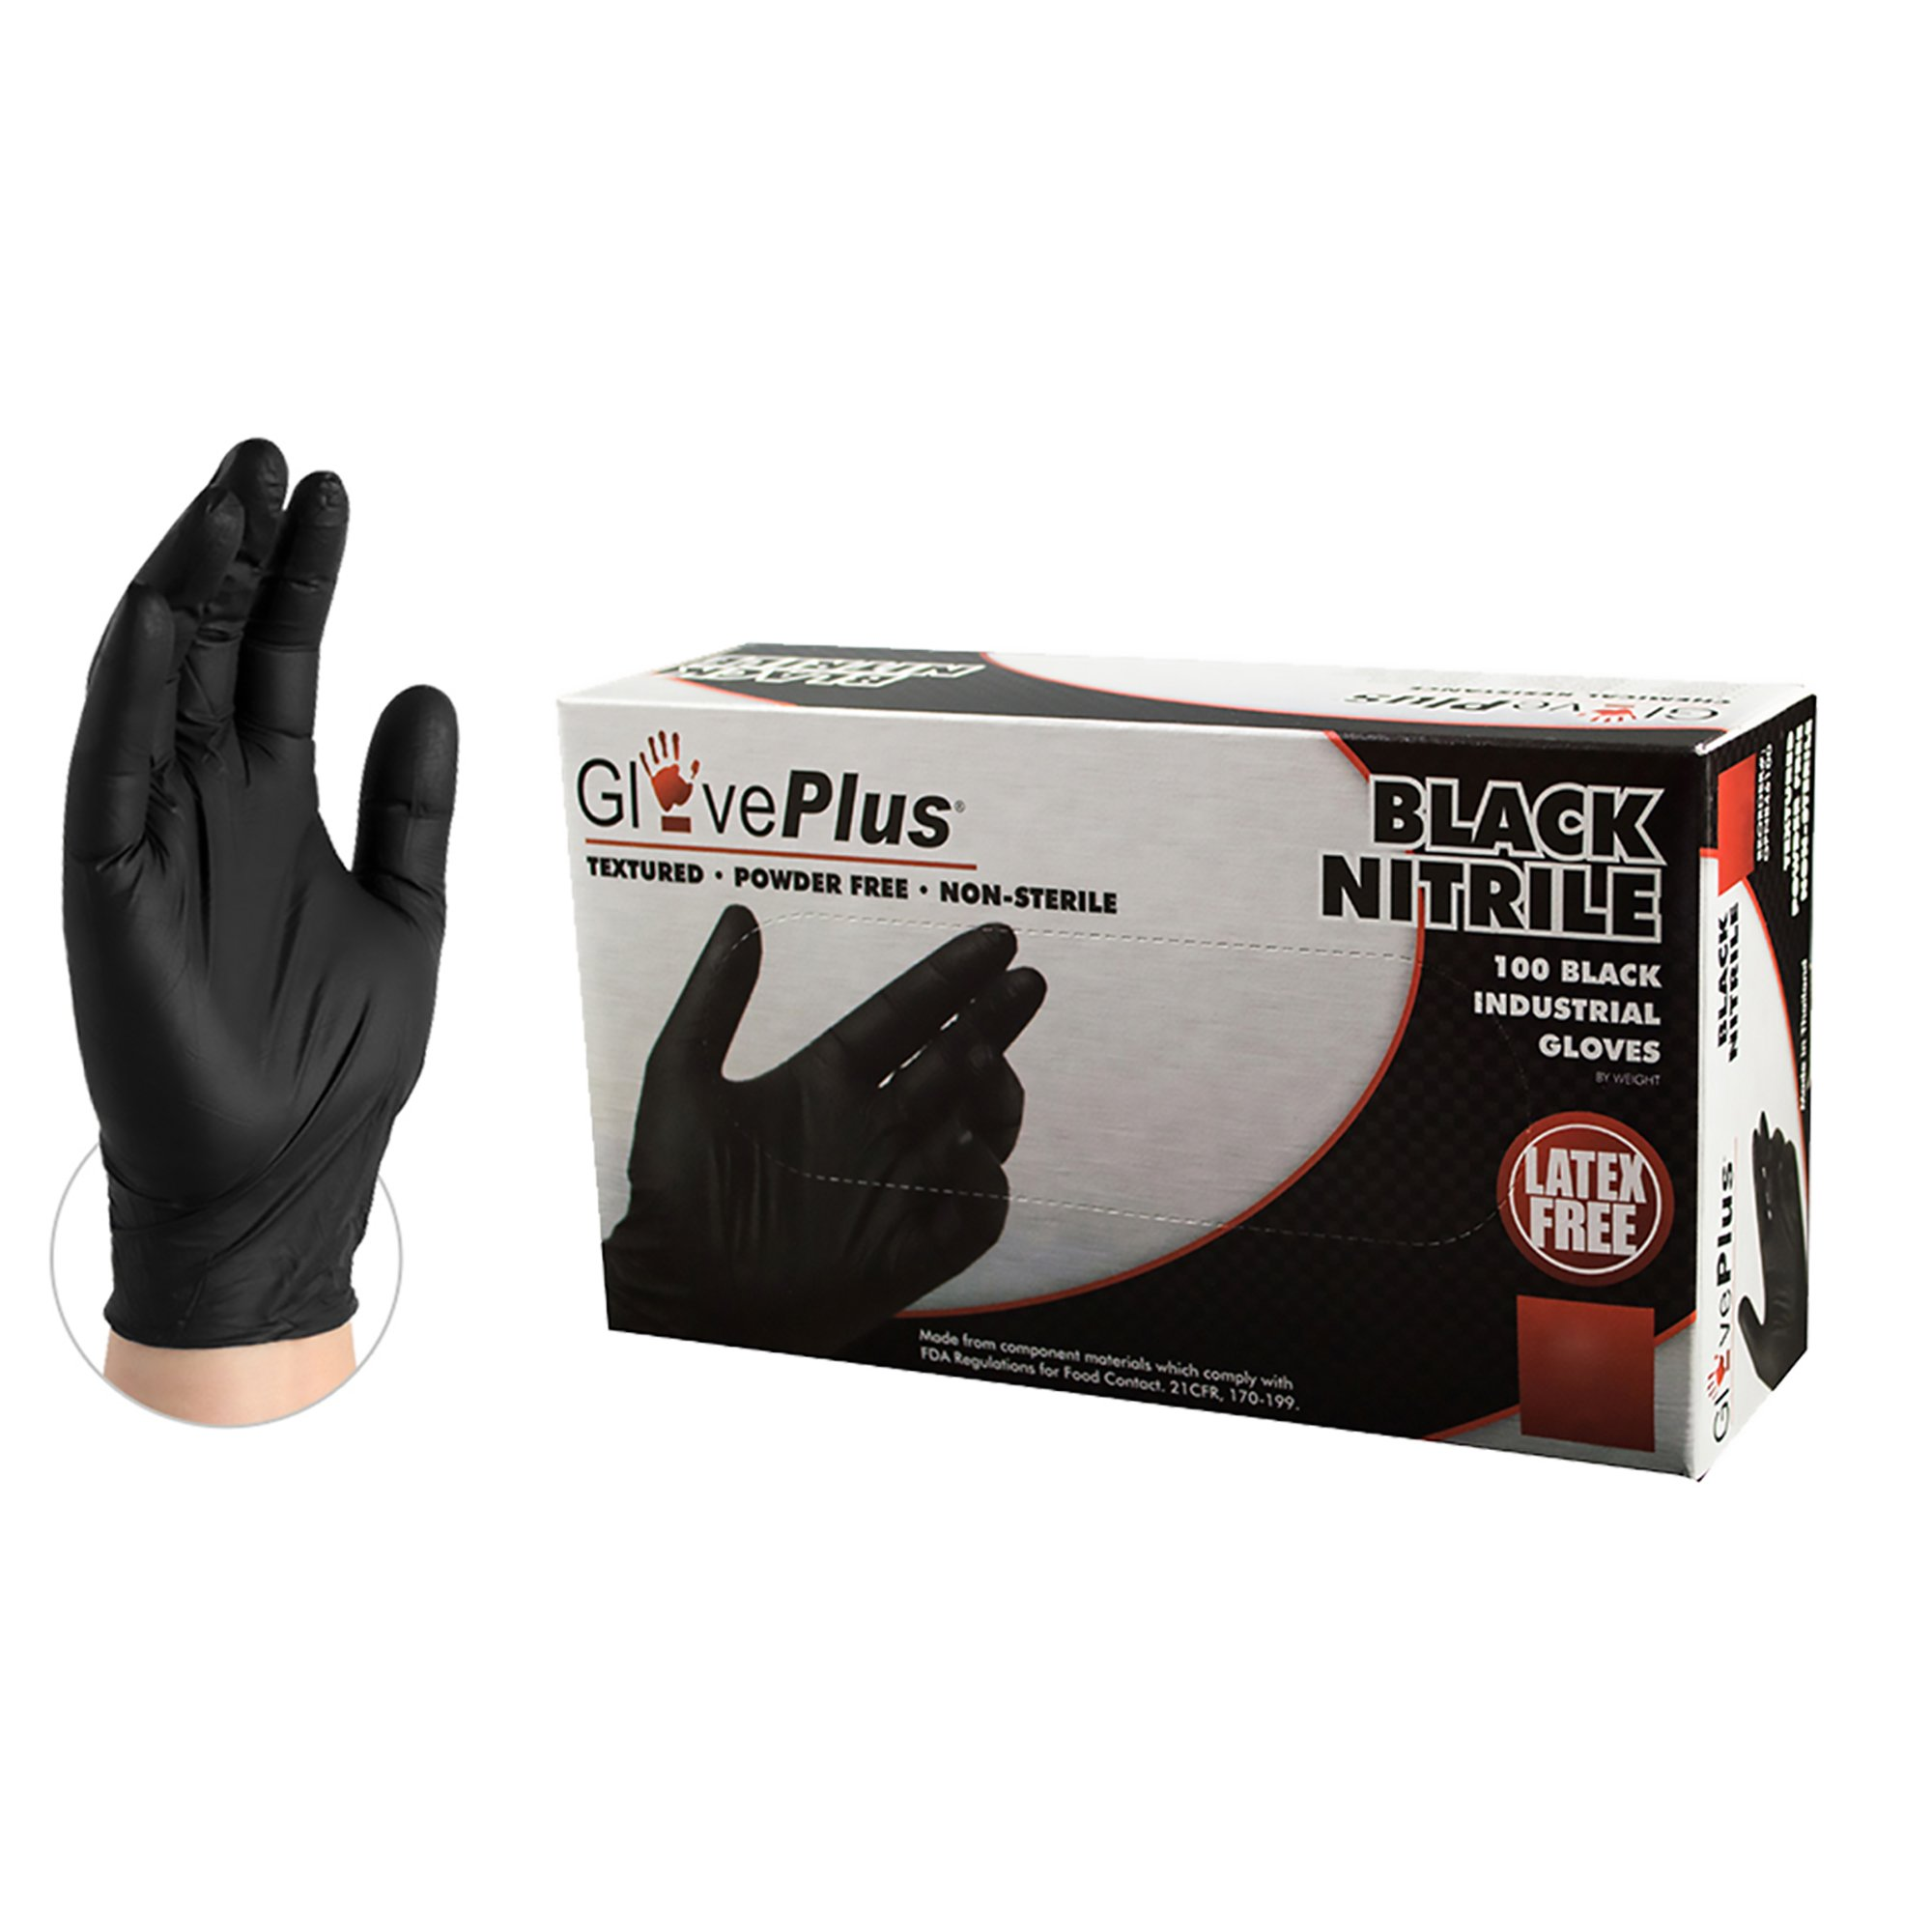 GlovePlus Industrial Black Nitrile Gloves - 5 mil, Latex Free, Powder Free, Textured, Disposable, XLarge, GPNB48100, Case of 1000 by Ammex